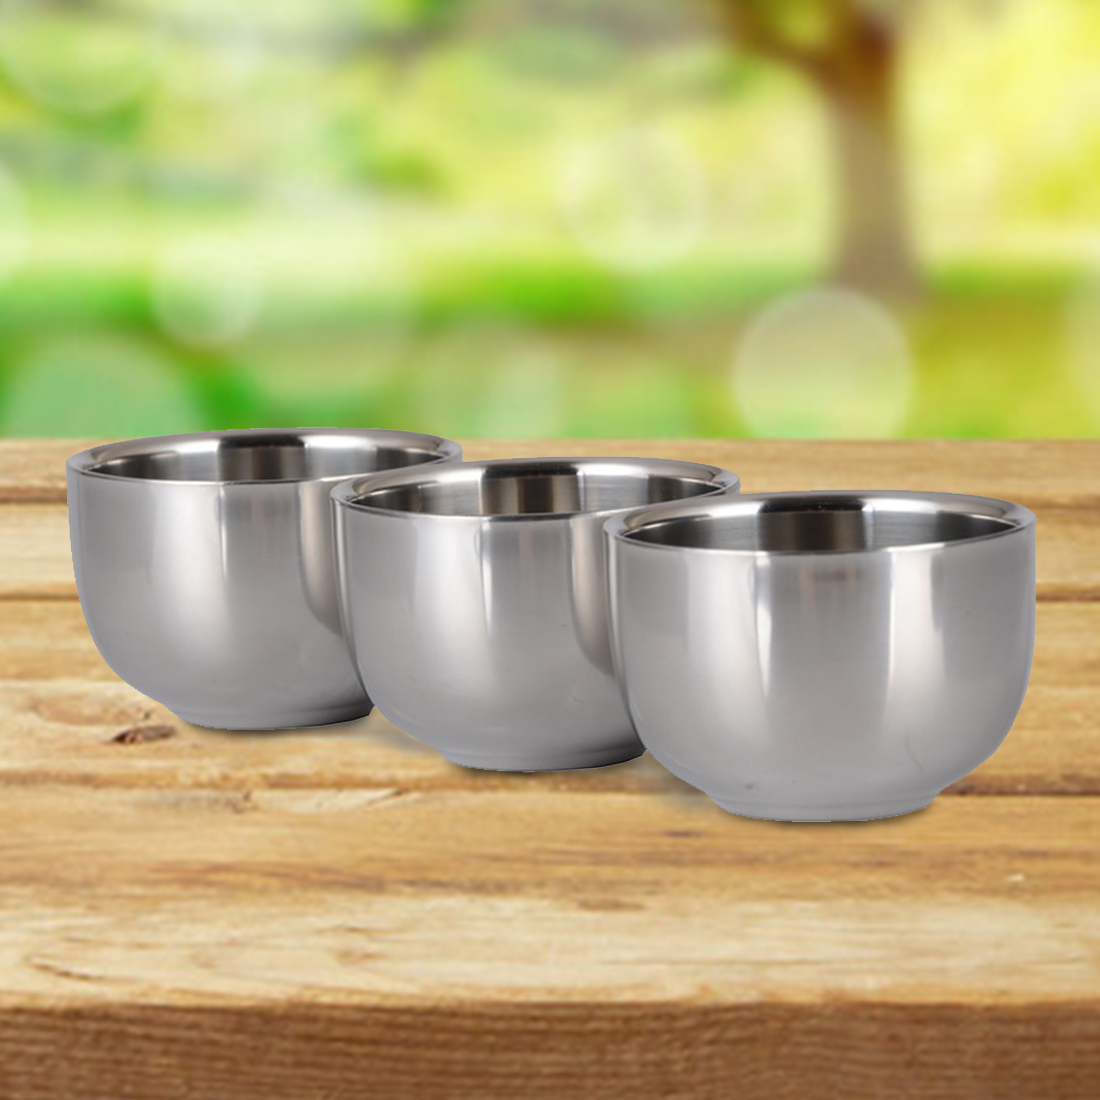 New 7.2cm Stainless Steel Nonmagnetic Cup Smooth surface Home and garden kitchen tool Kitchen accessary two layer Cup